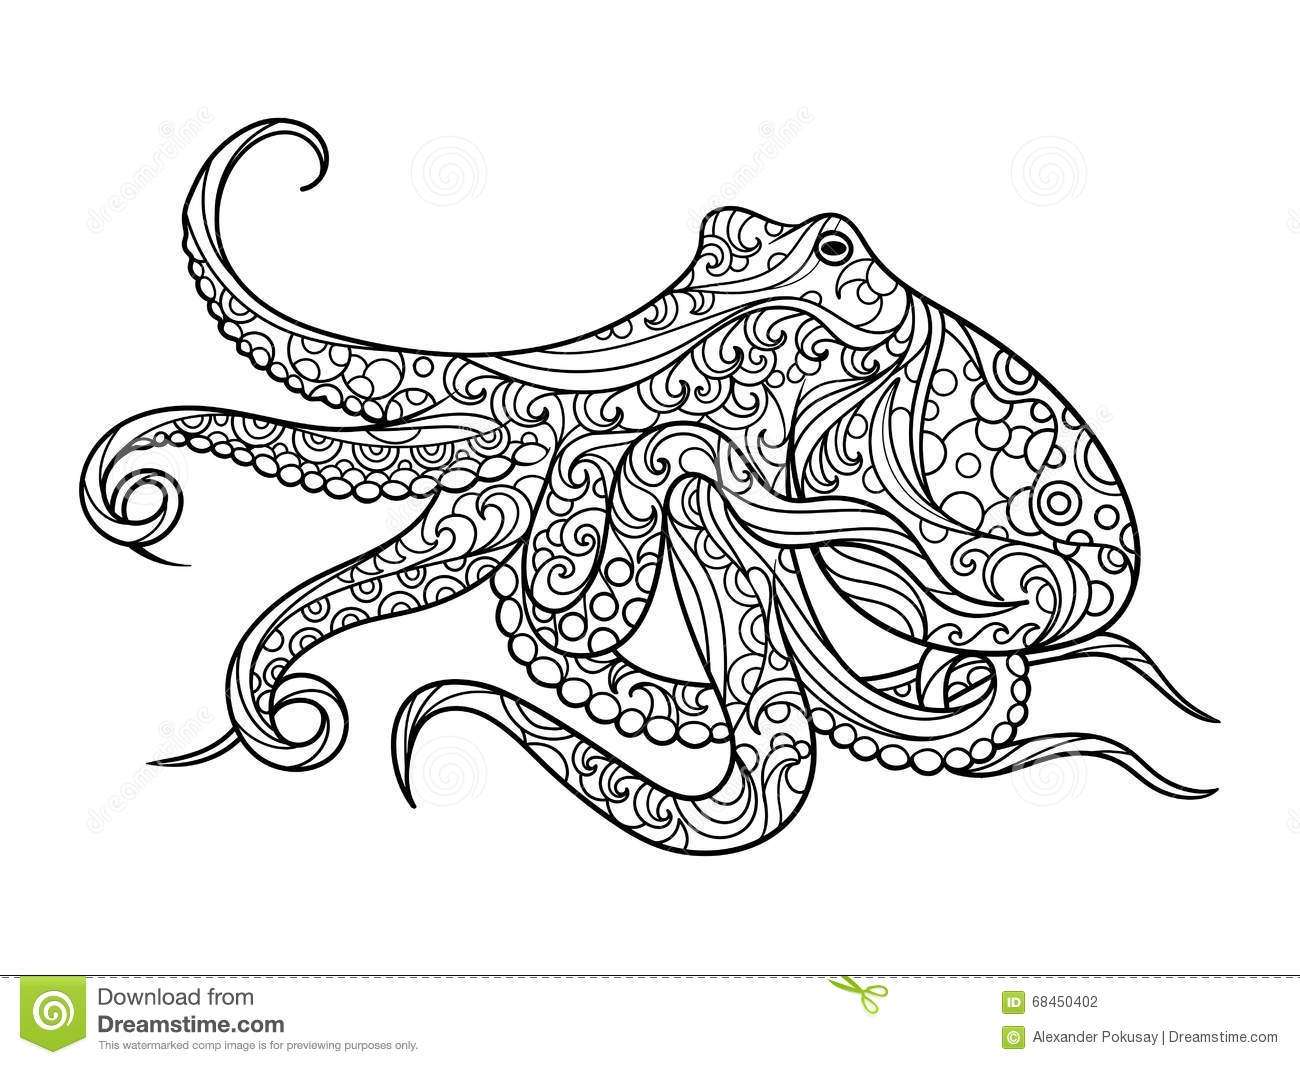 giant coloring pages for adults - stock illustration octopus coloring book adults vector sea animal illustration anti stress adult zentangle style black white image